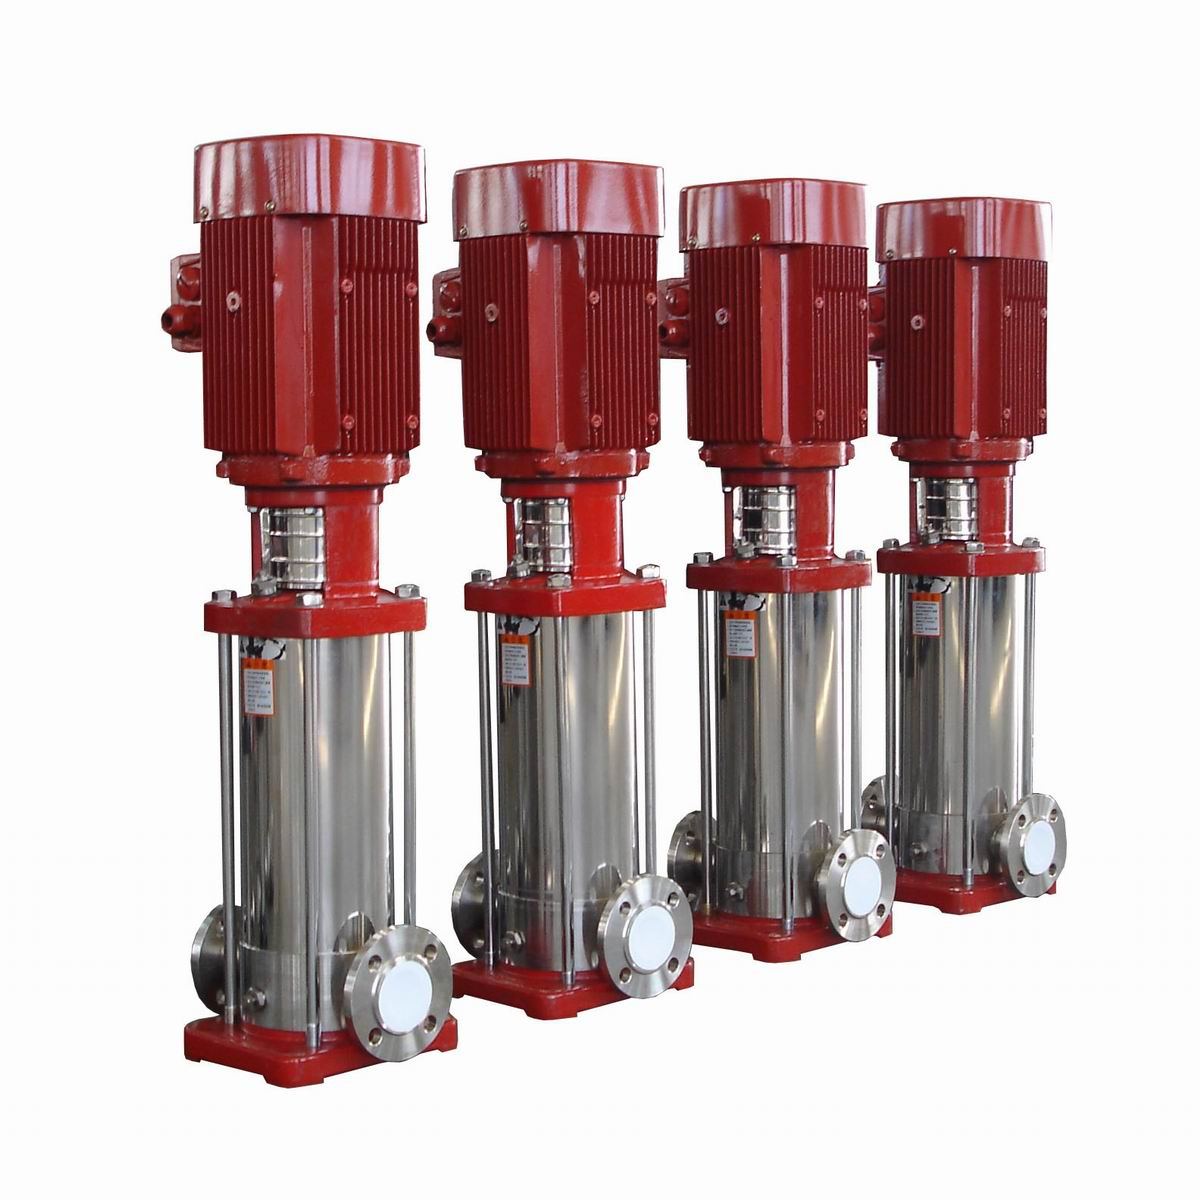 Buy Vertical multistage fire pump Price,Size,Weight,Model,Width